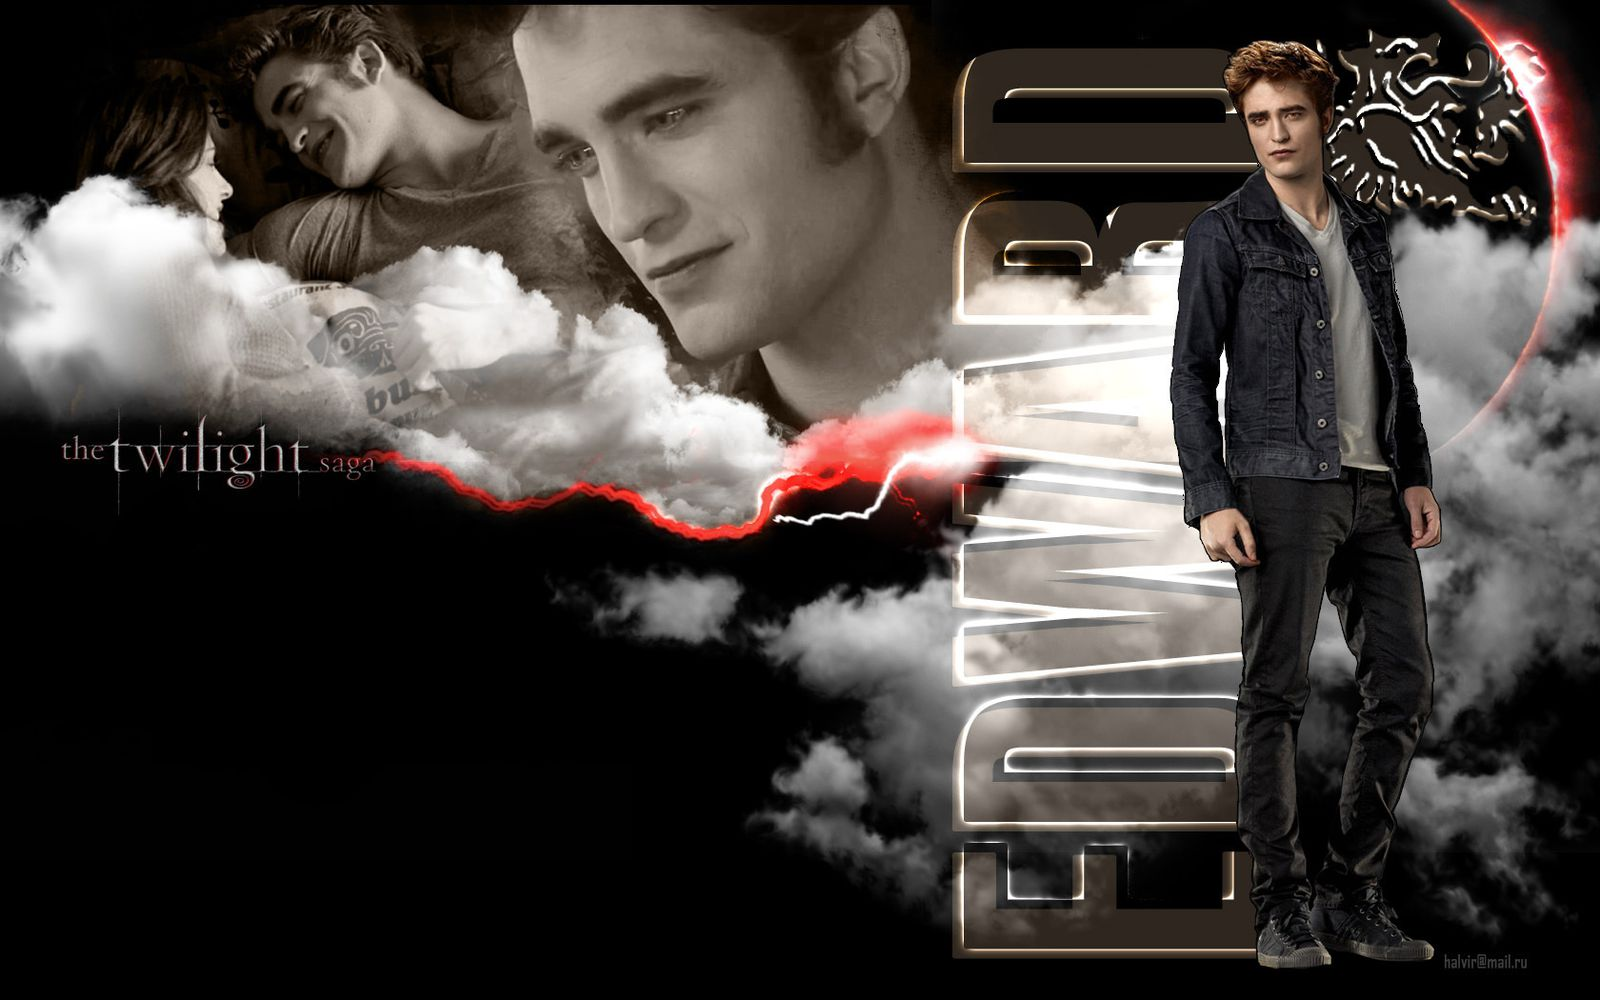 Eclipse-robert-pattinson-12212496-1680-1050.jpg